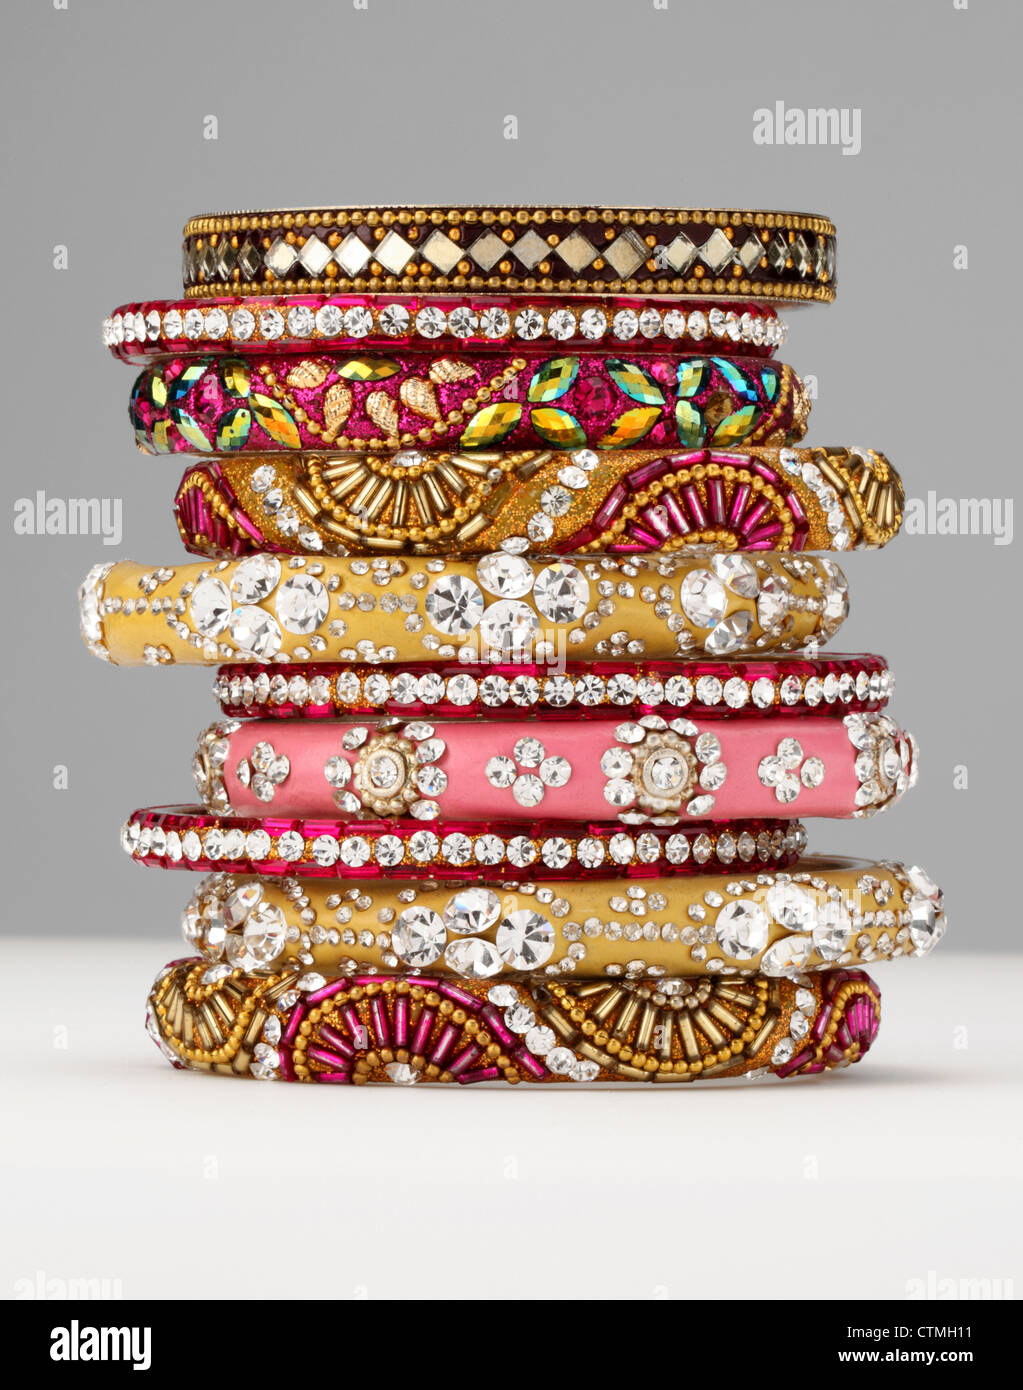 Costume jewelry. A stack of colorful bracelets. - Stock Image